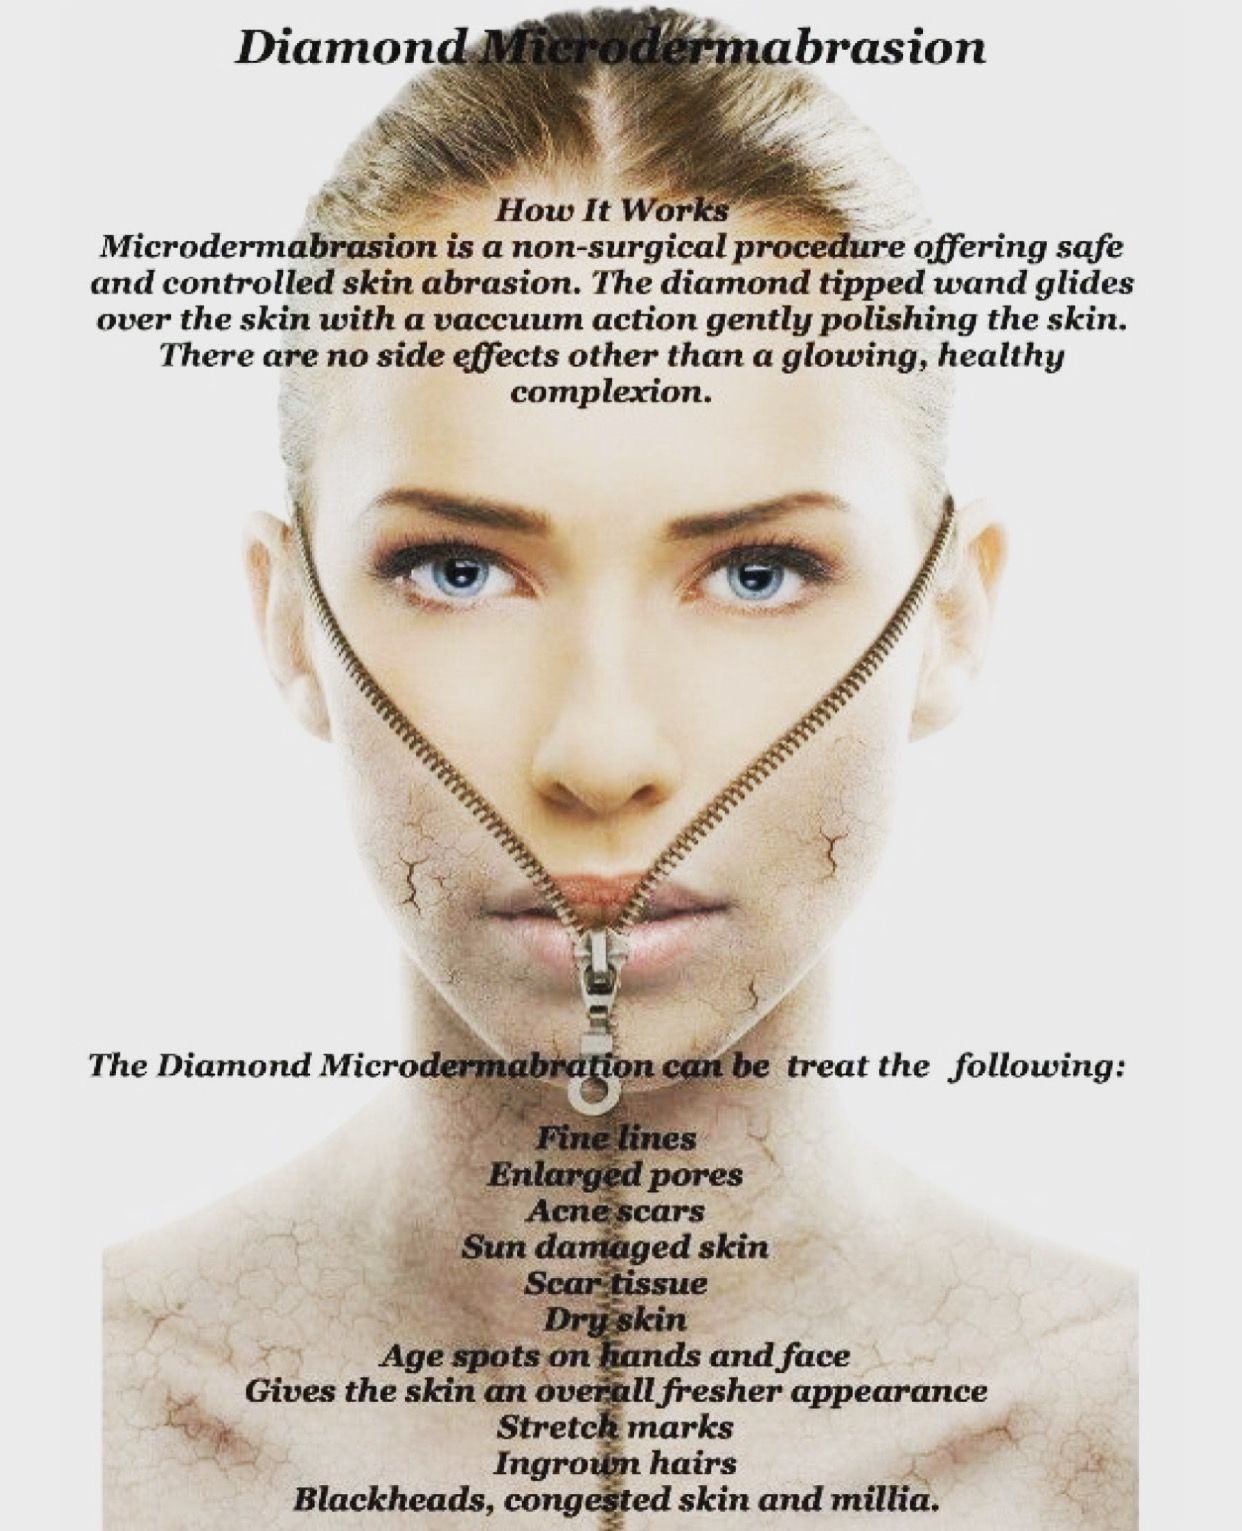 Pin By The Beauty Spot On Treatment Information Microdermabrasion Facial Skin Care Facial Aesthetics